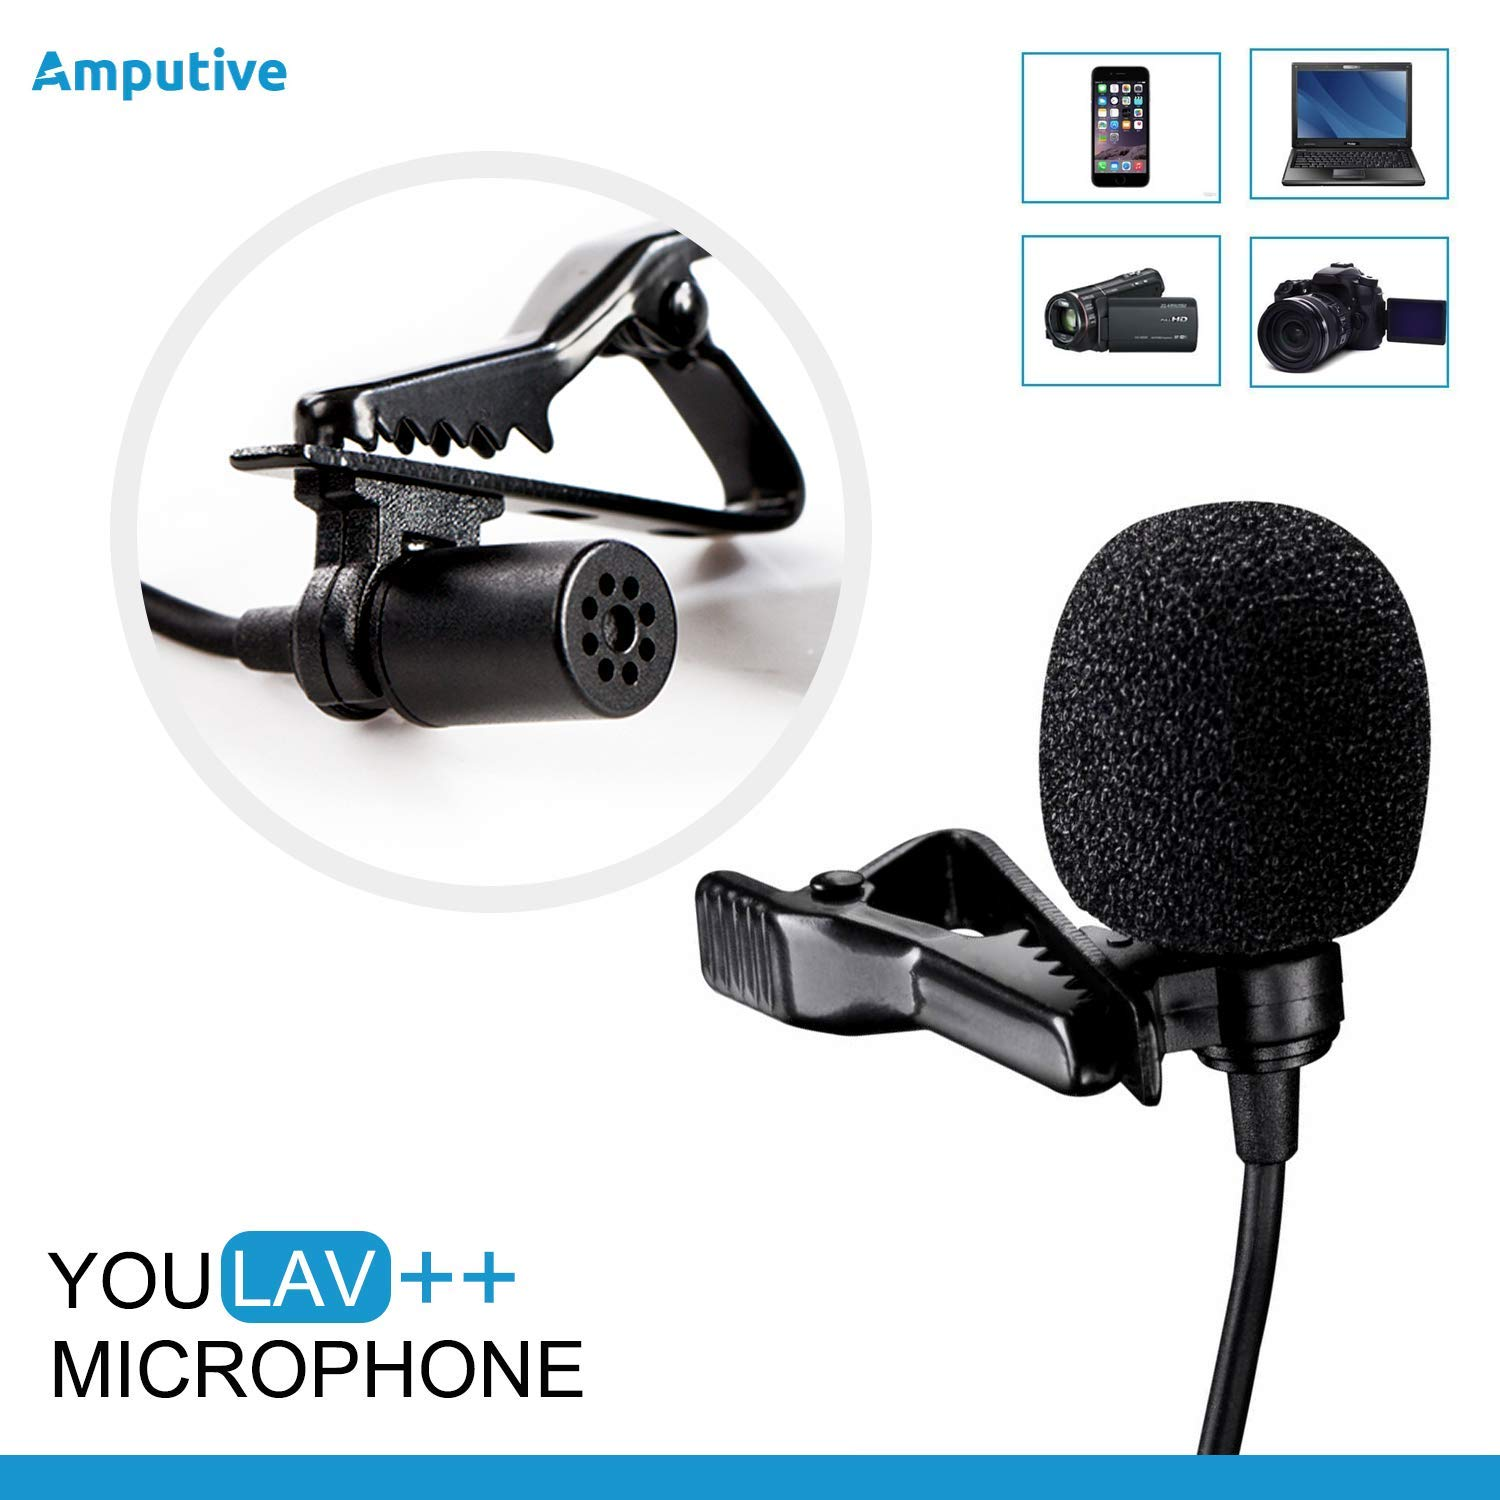 Amputive Youlav++ Omnidirectional Lapel Clip Microphone for Laptop Smartphones PC product image